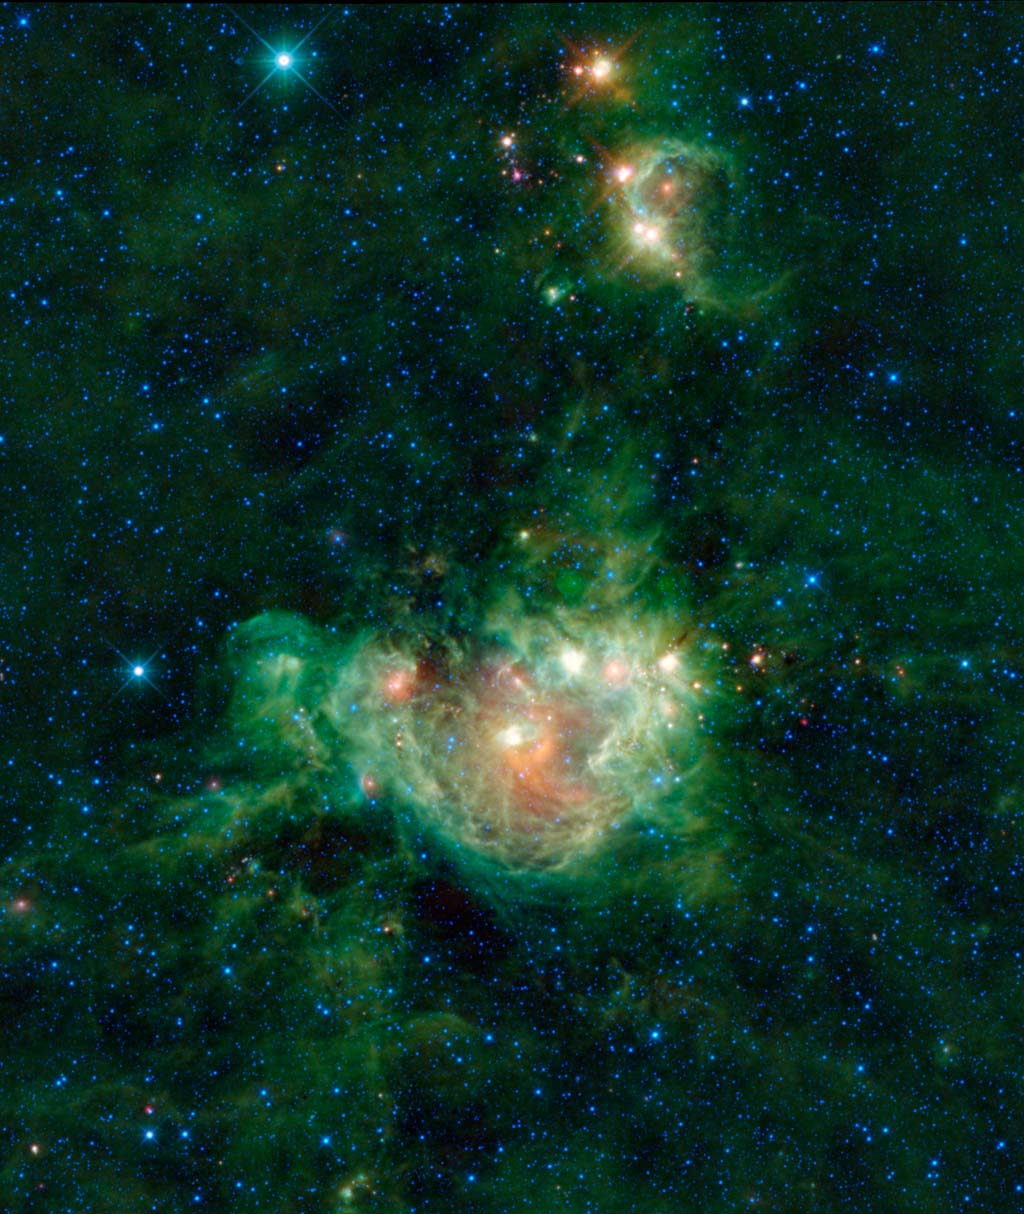 NASA's Wide-field Infrared Survey Explorer is a little like the Vincent van Gogh of the infrared sky, providing the world with picturesque images of the cosmos by representing infrared light through color. This image is the nebula NGC 2174.